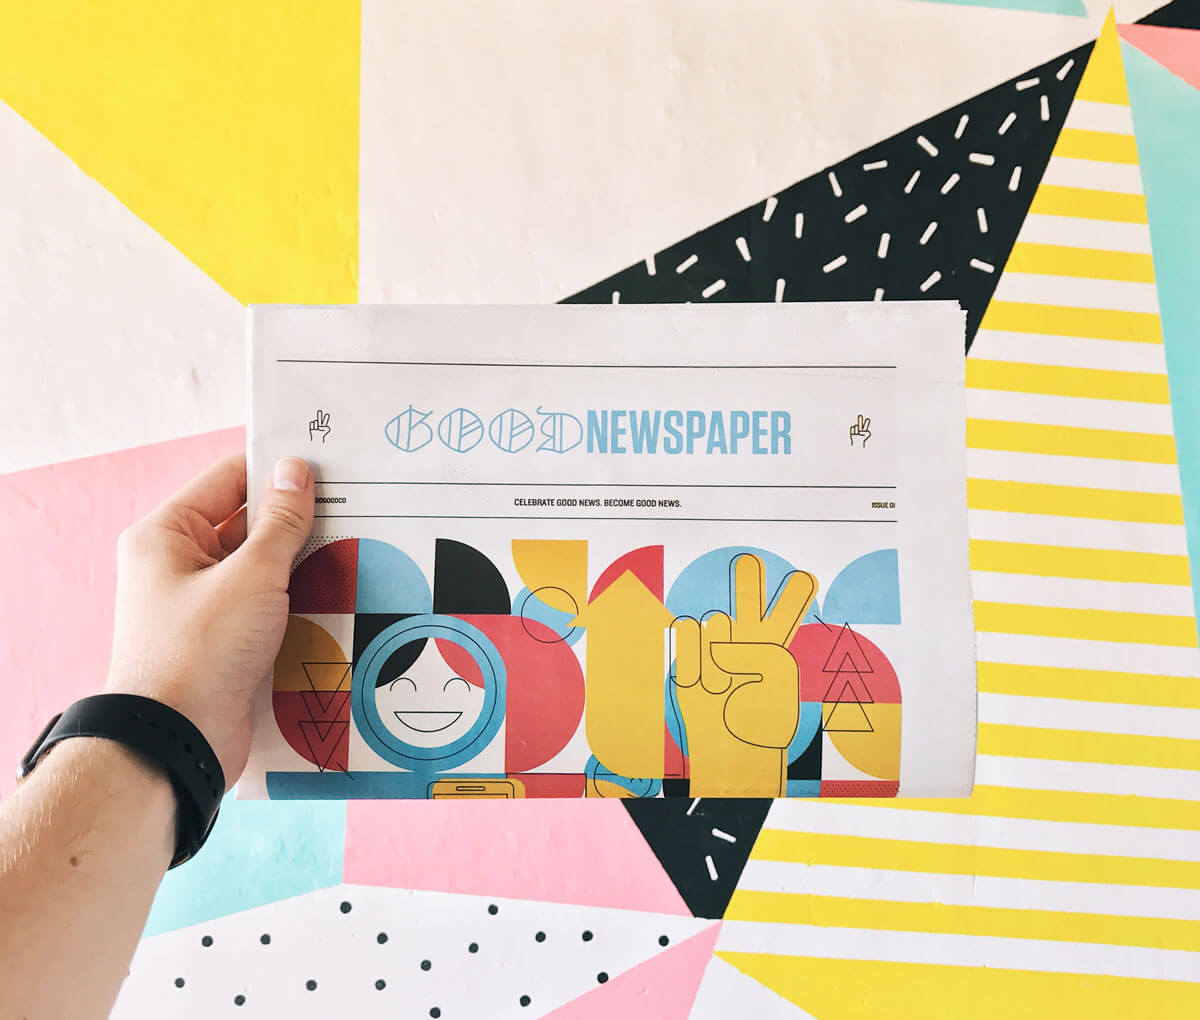 A hand holding a colourful and vibrant newspaper called 'Good newspaper' against a colourful patterned wall.